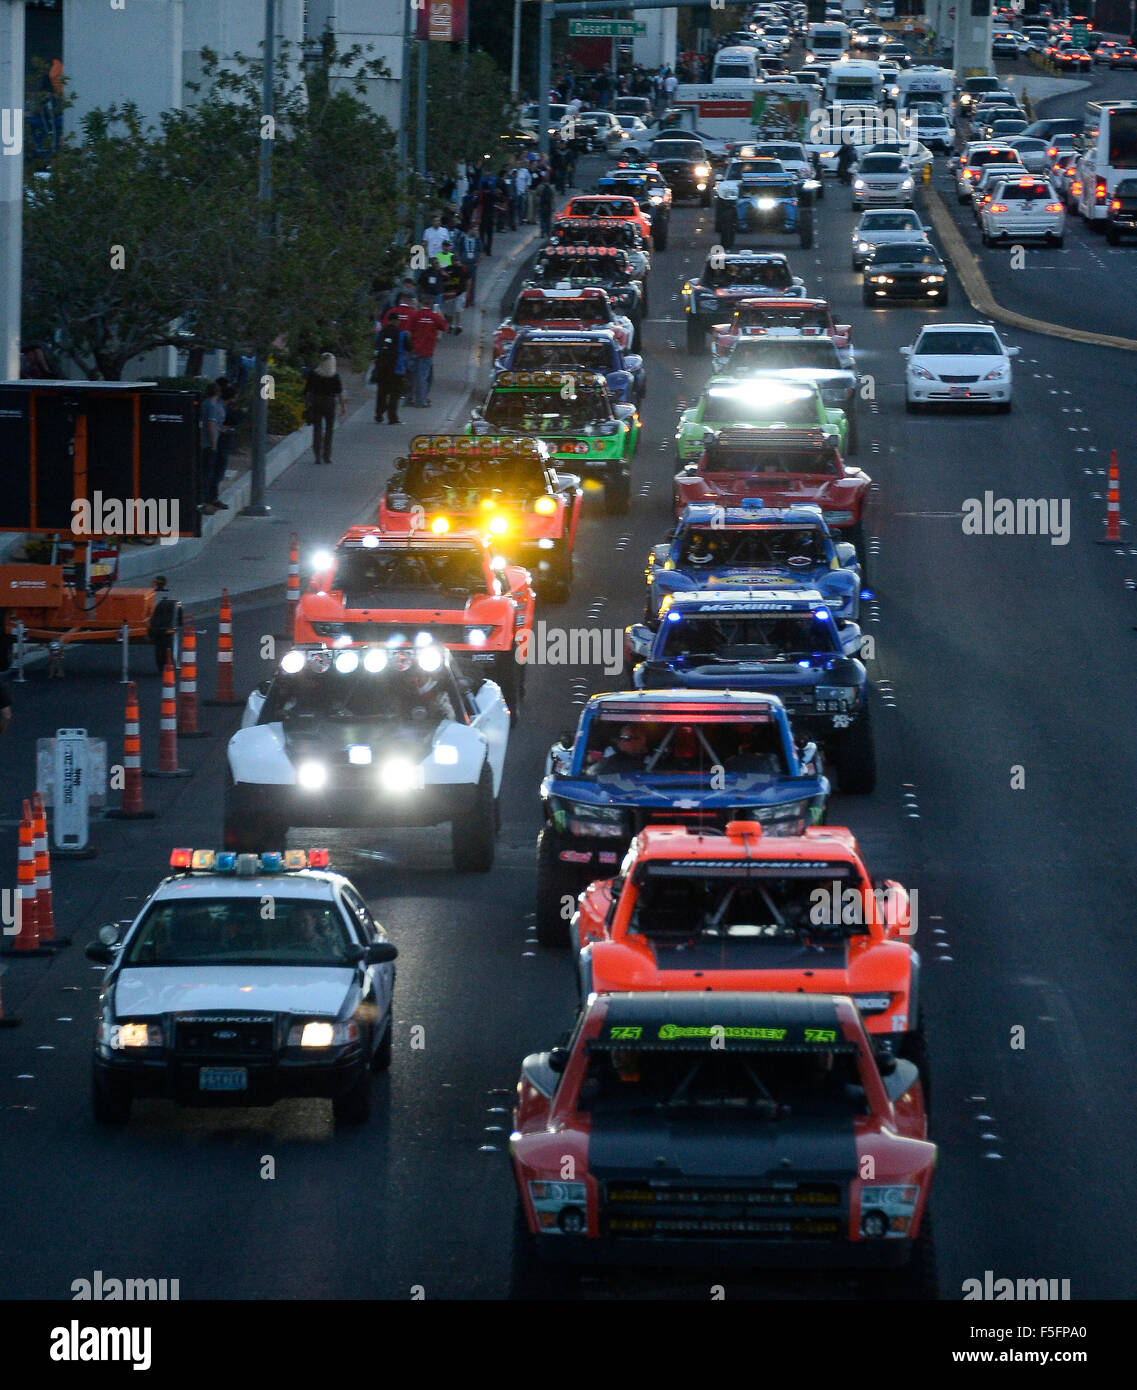 Las Vegas, Nevada, USA. 03rd Nov, 2015. Thousands of people involved in the auto industry attend the Specialty Equipment Market Association (SEMA) shows on Tuesday. The show runs till Friday with hundreds of cars and other automotive products on display.Photo by Gene Blevins/LA DailyNews/ZumaPress © Gene Blevins/ZUMA Wire/Alamy Live News Credit:  ZUMA Press, Inc./Alamy Live News Stock Photo